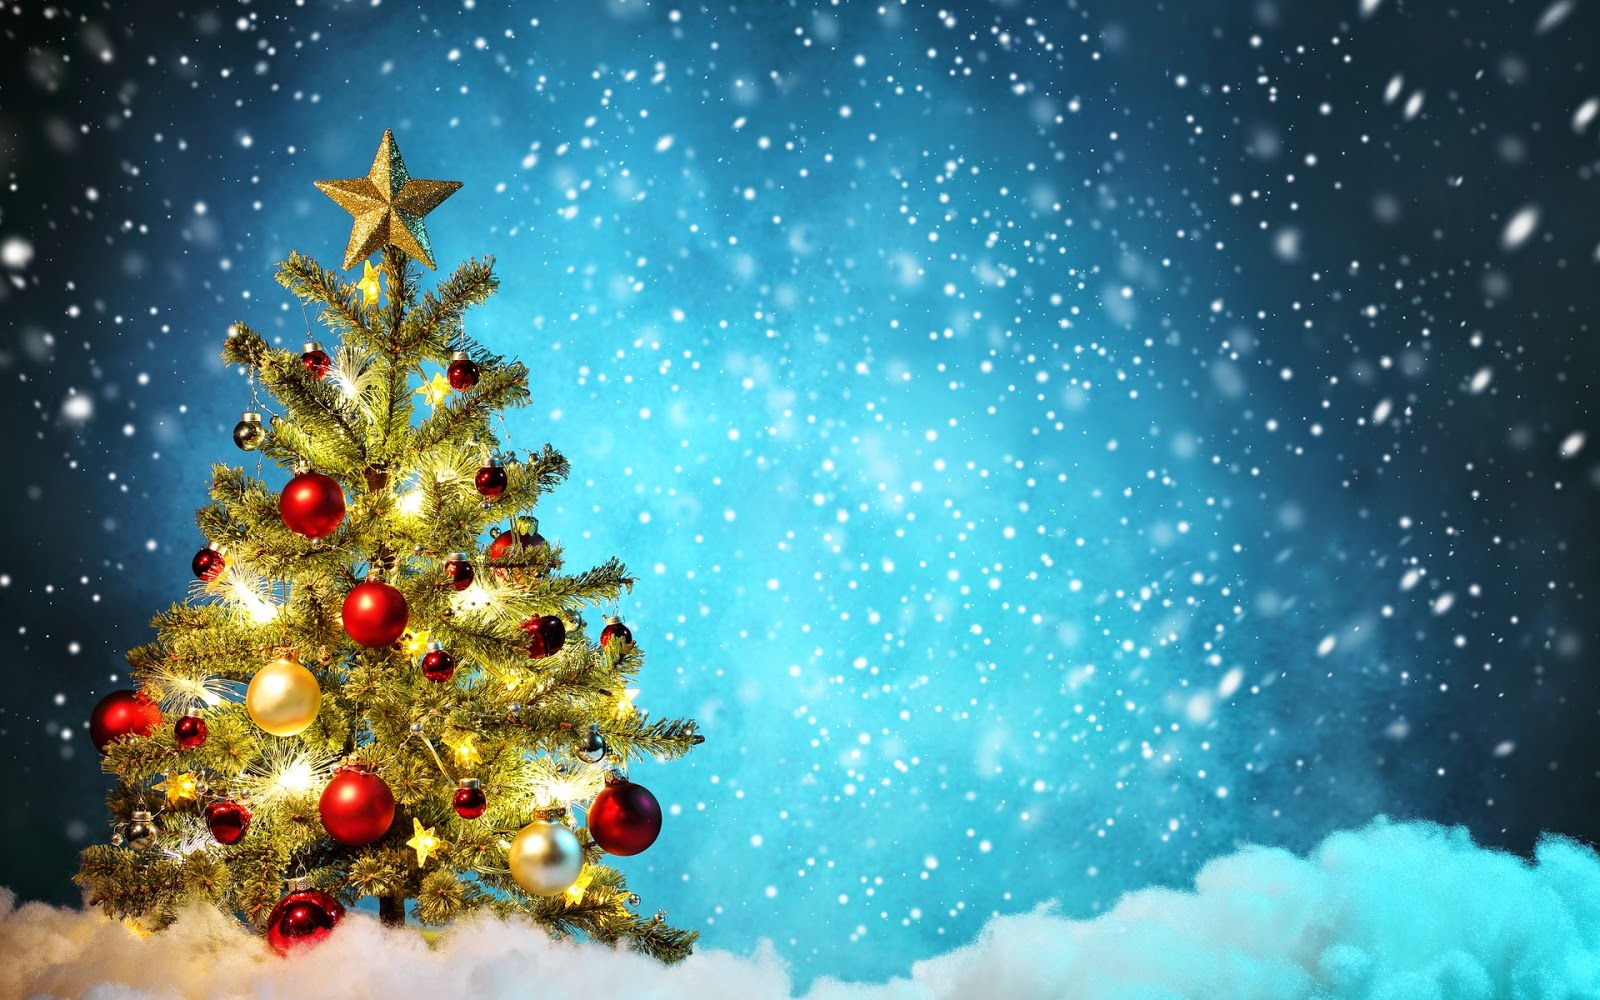 merry christmas images | wallpapers for facebook